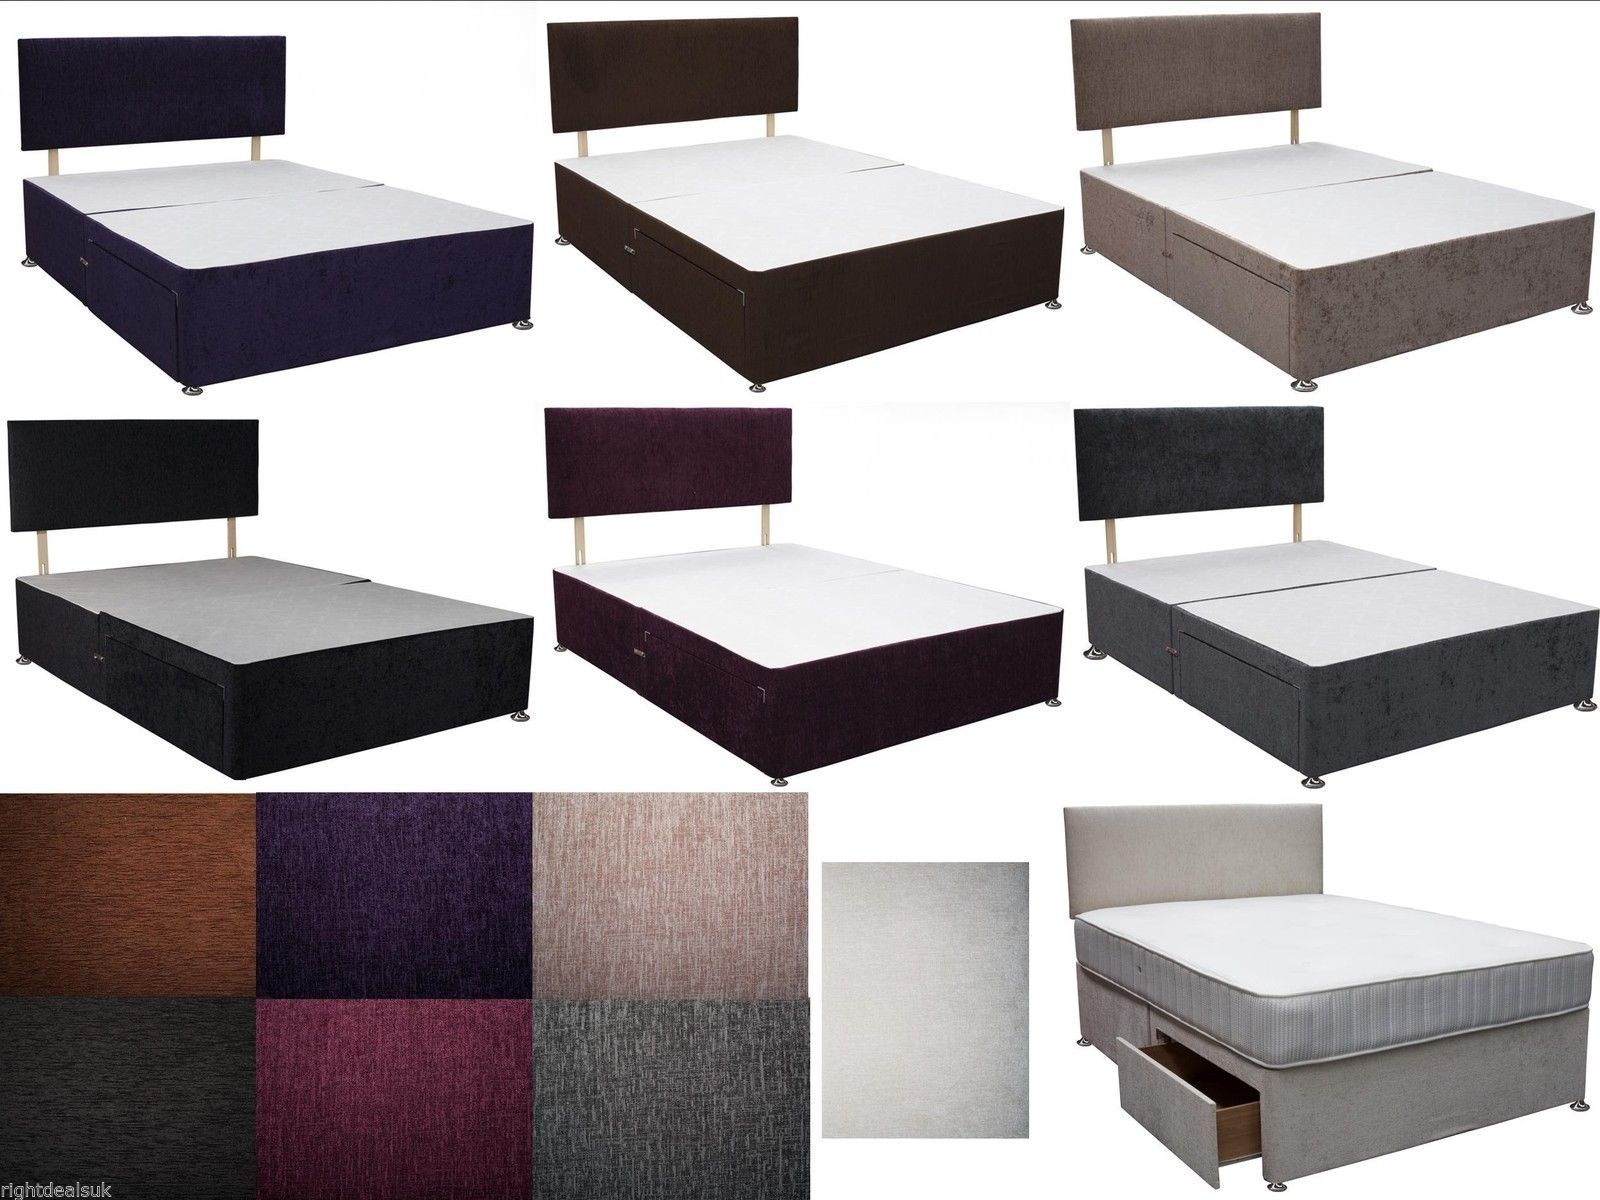 Caspian 3ft single divan bed with drawers storage for Single divan with drawers and headboard